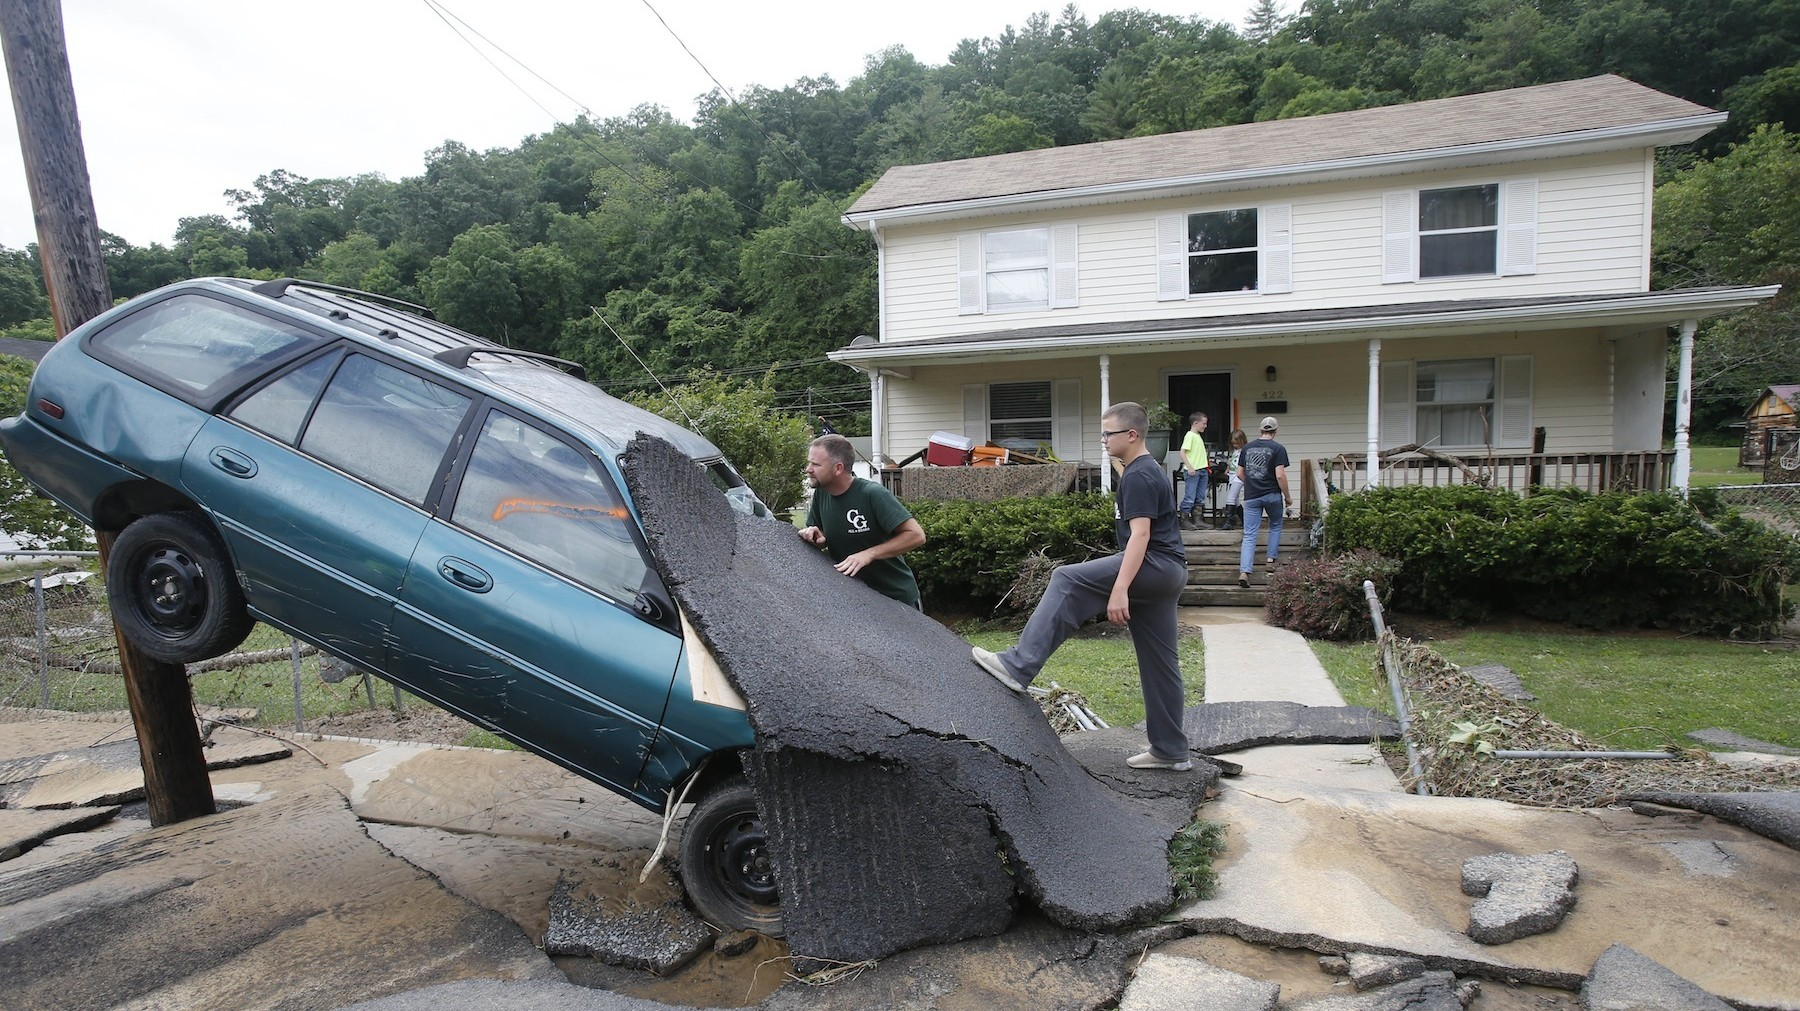 23 dead in West Virginia floods: 'We have lost almost entire towns'